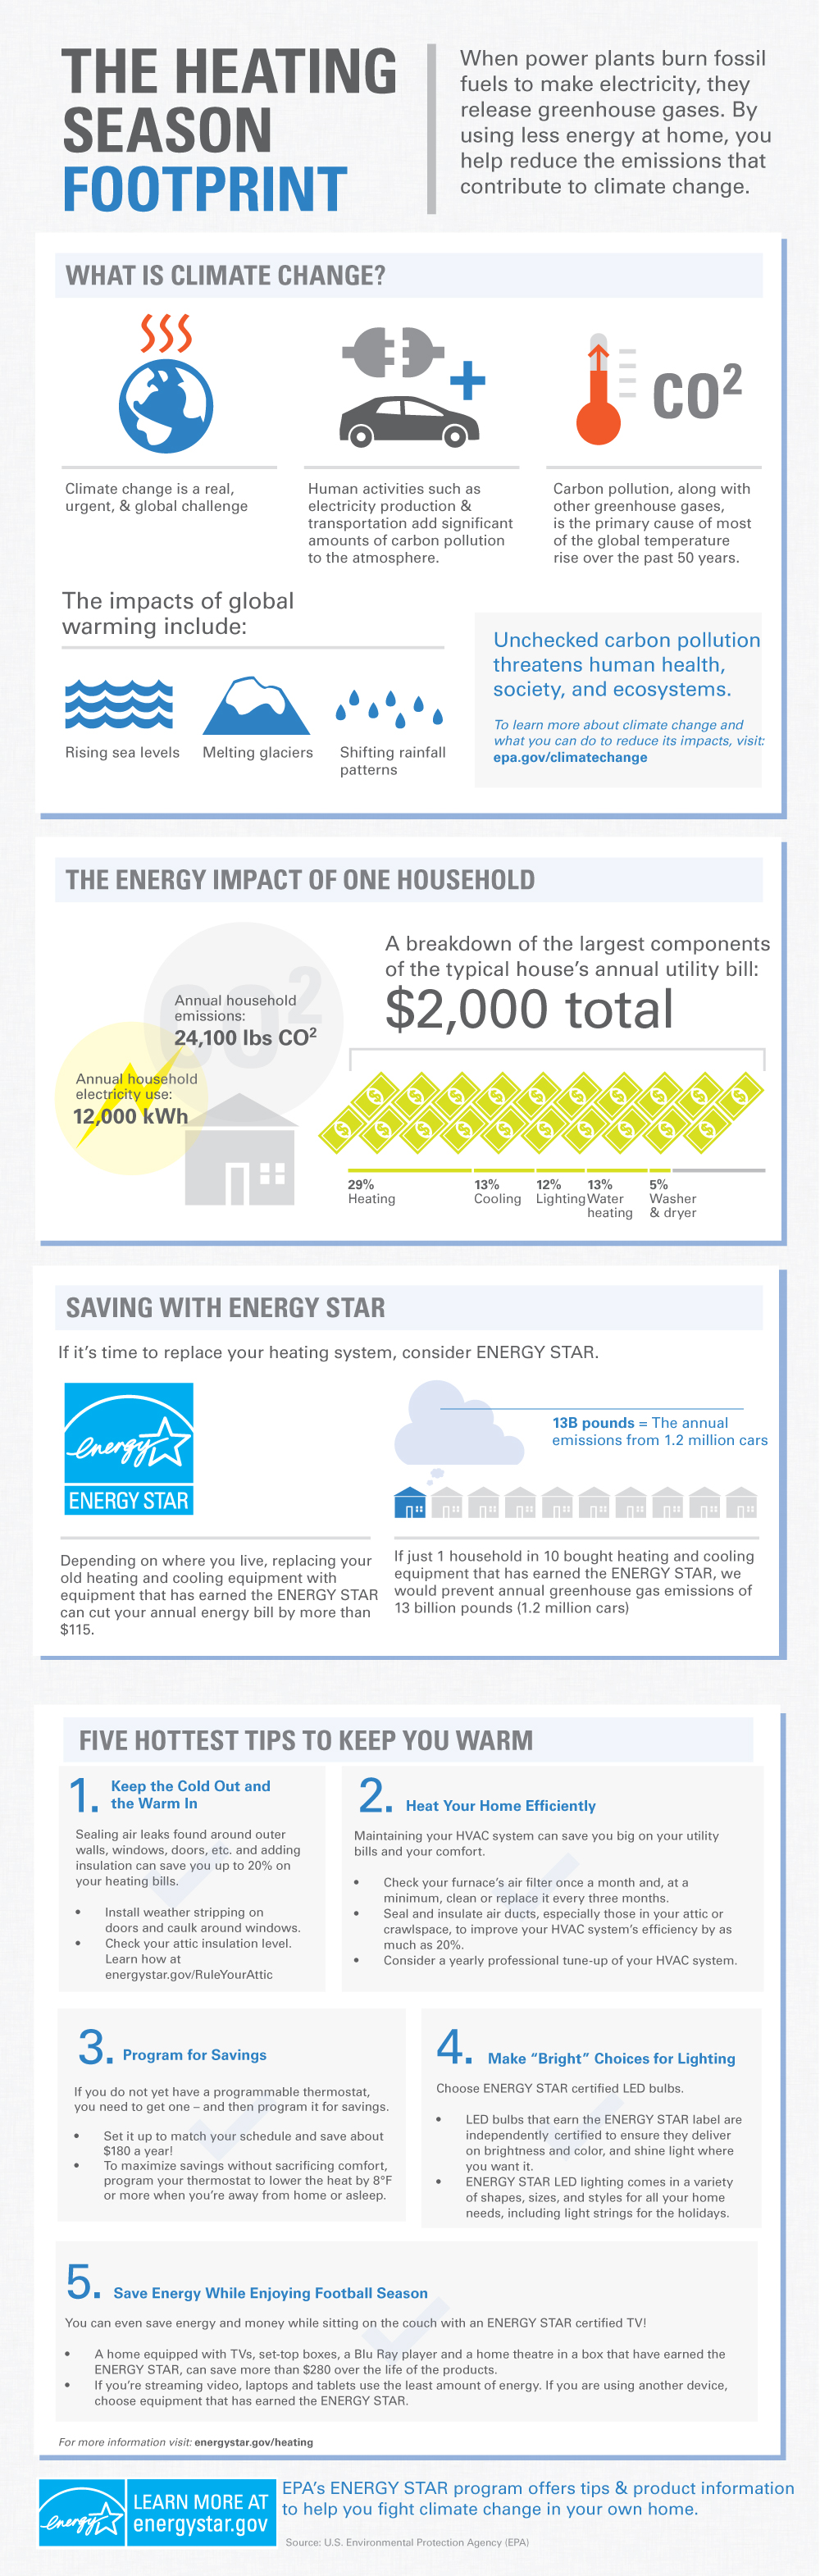 Energy star the simple choice for energy efficiency 5 star energy